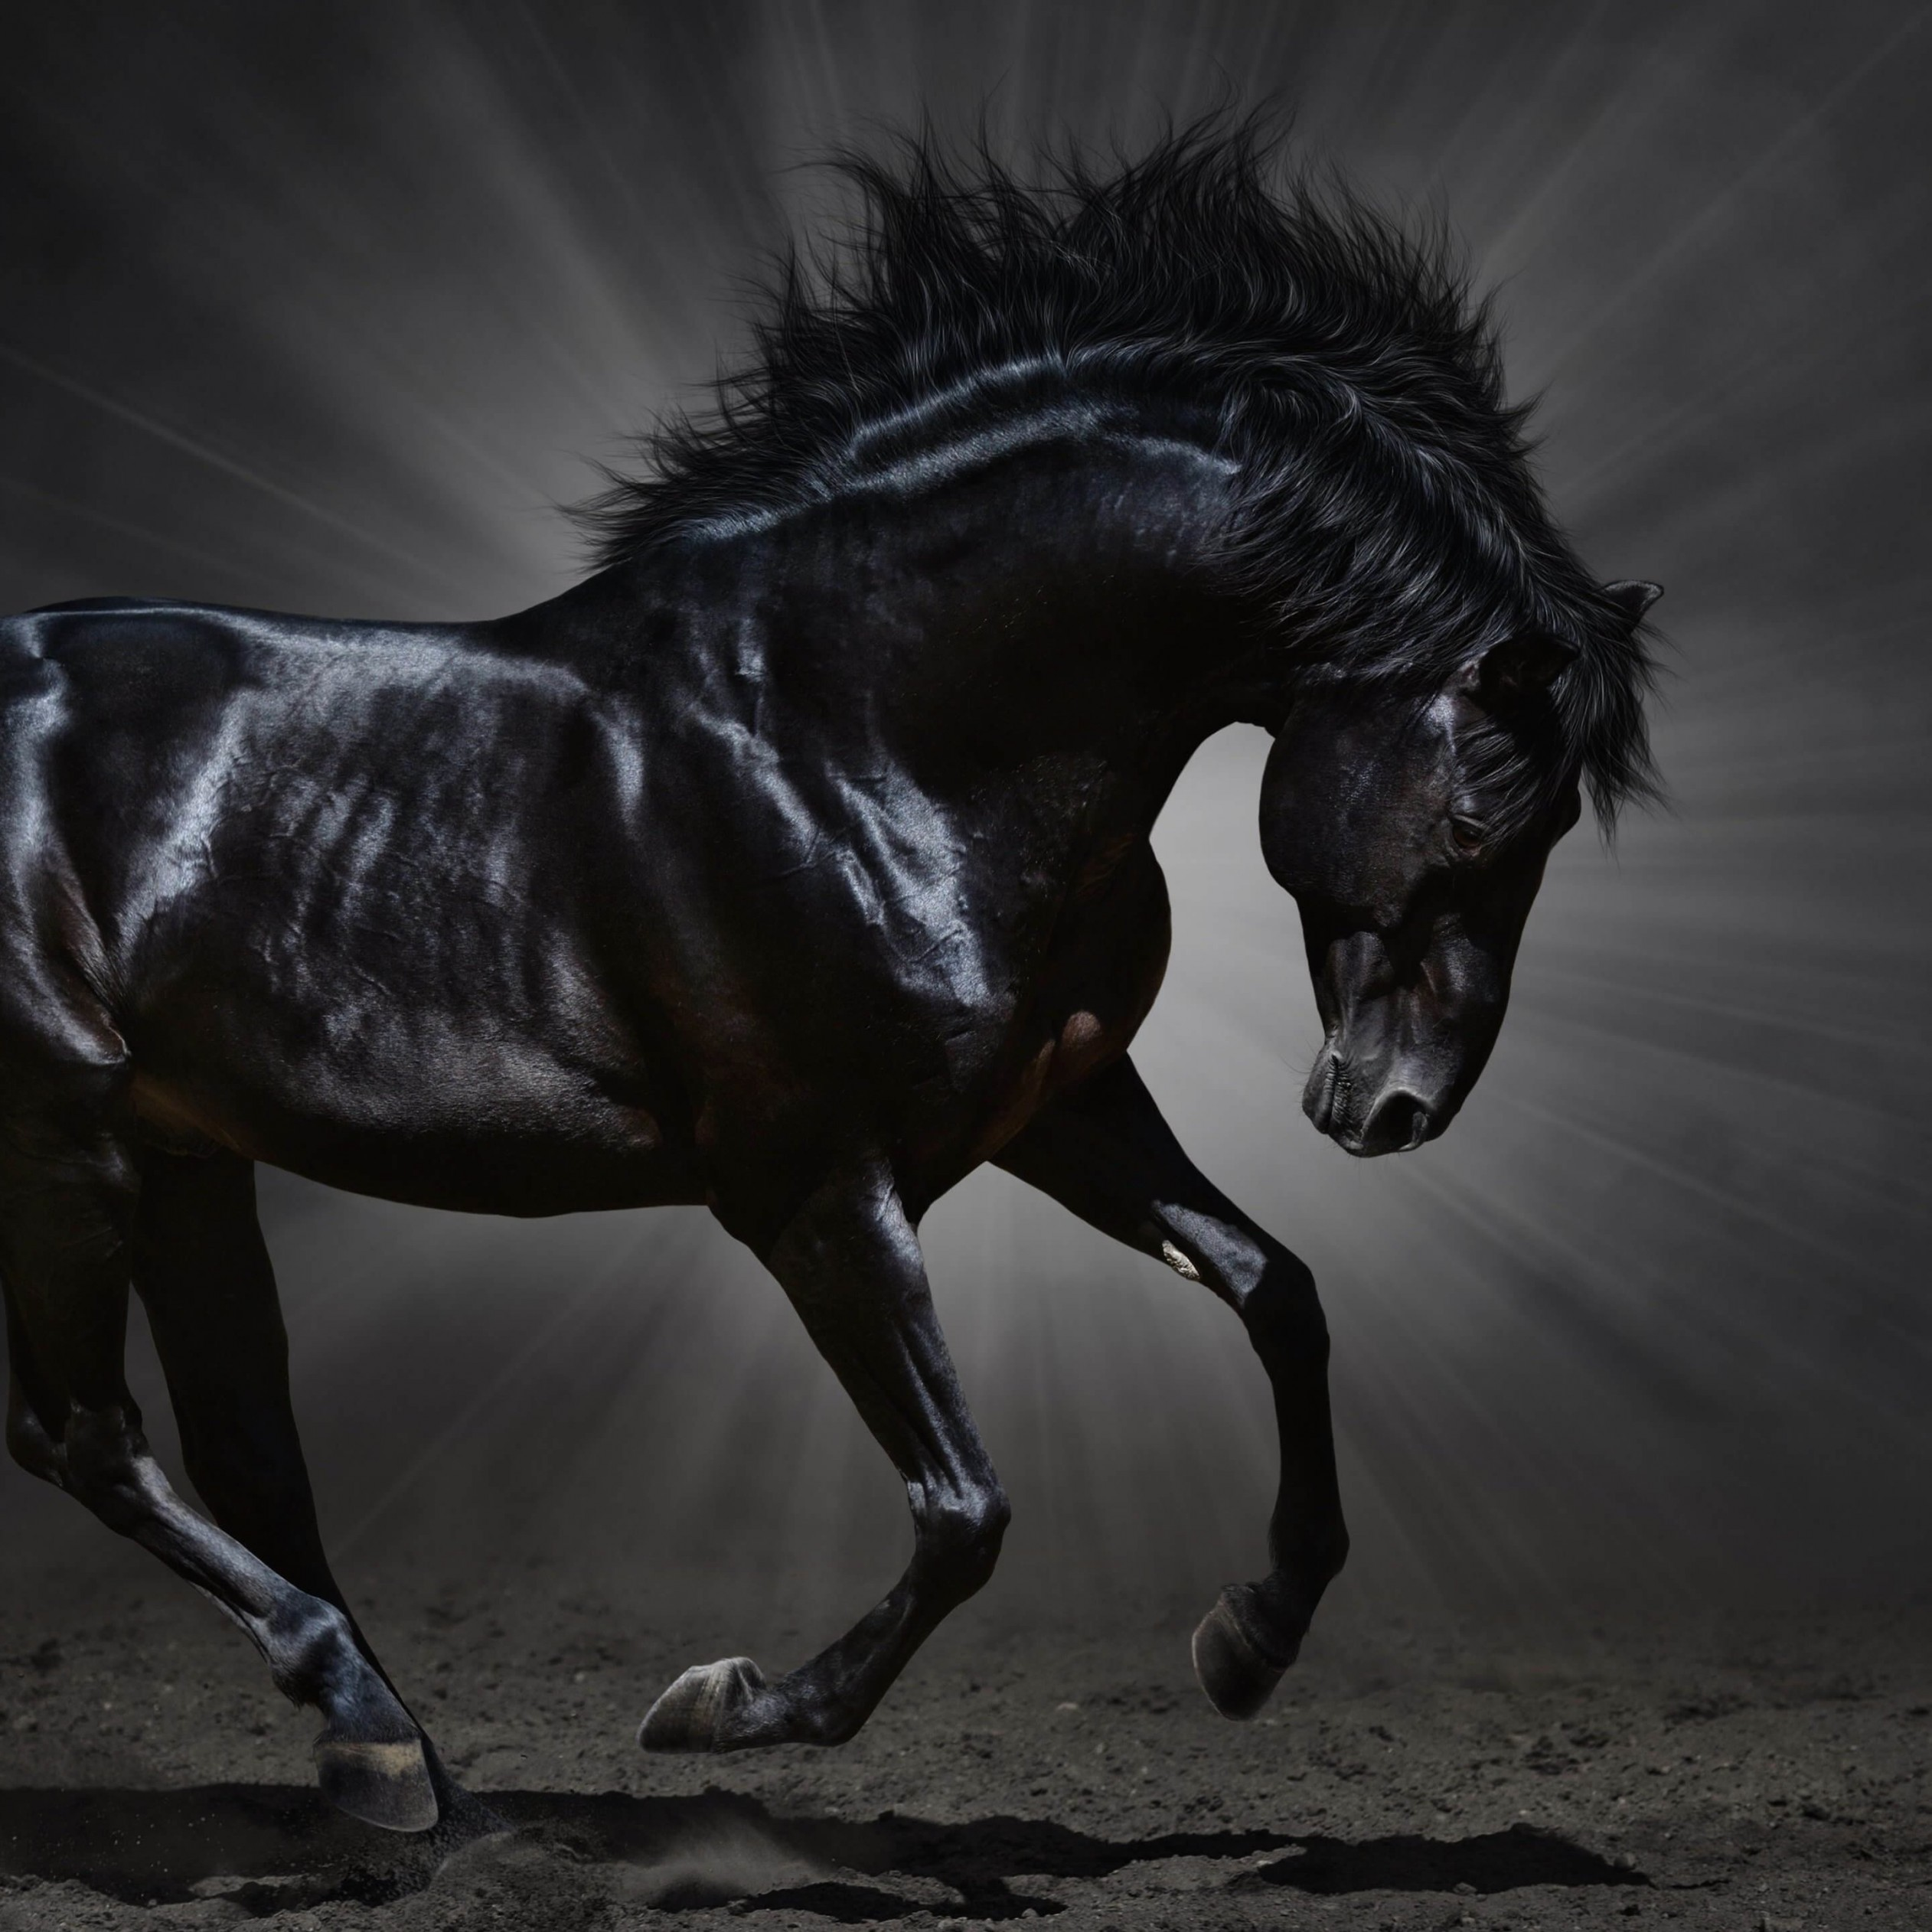 Dark Horse Wallpaper for Apple iPad 3